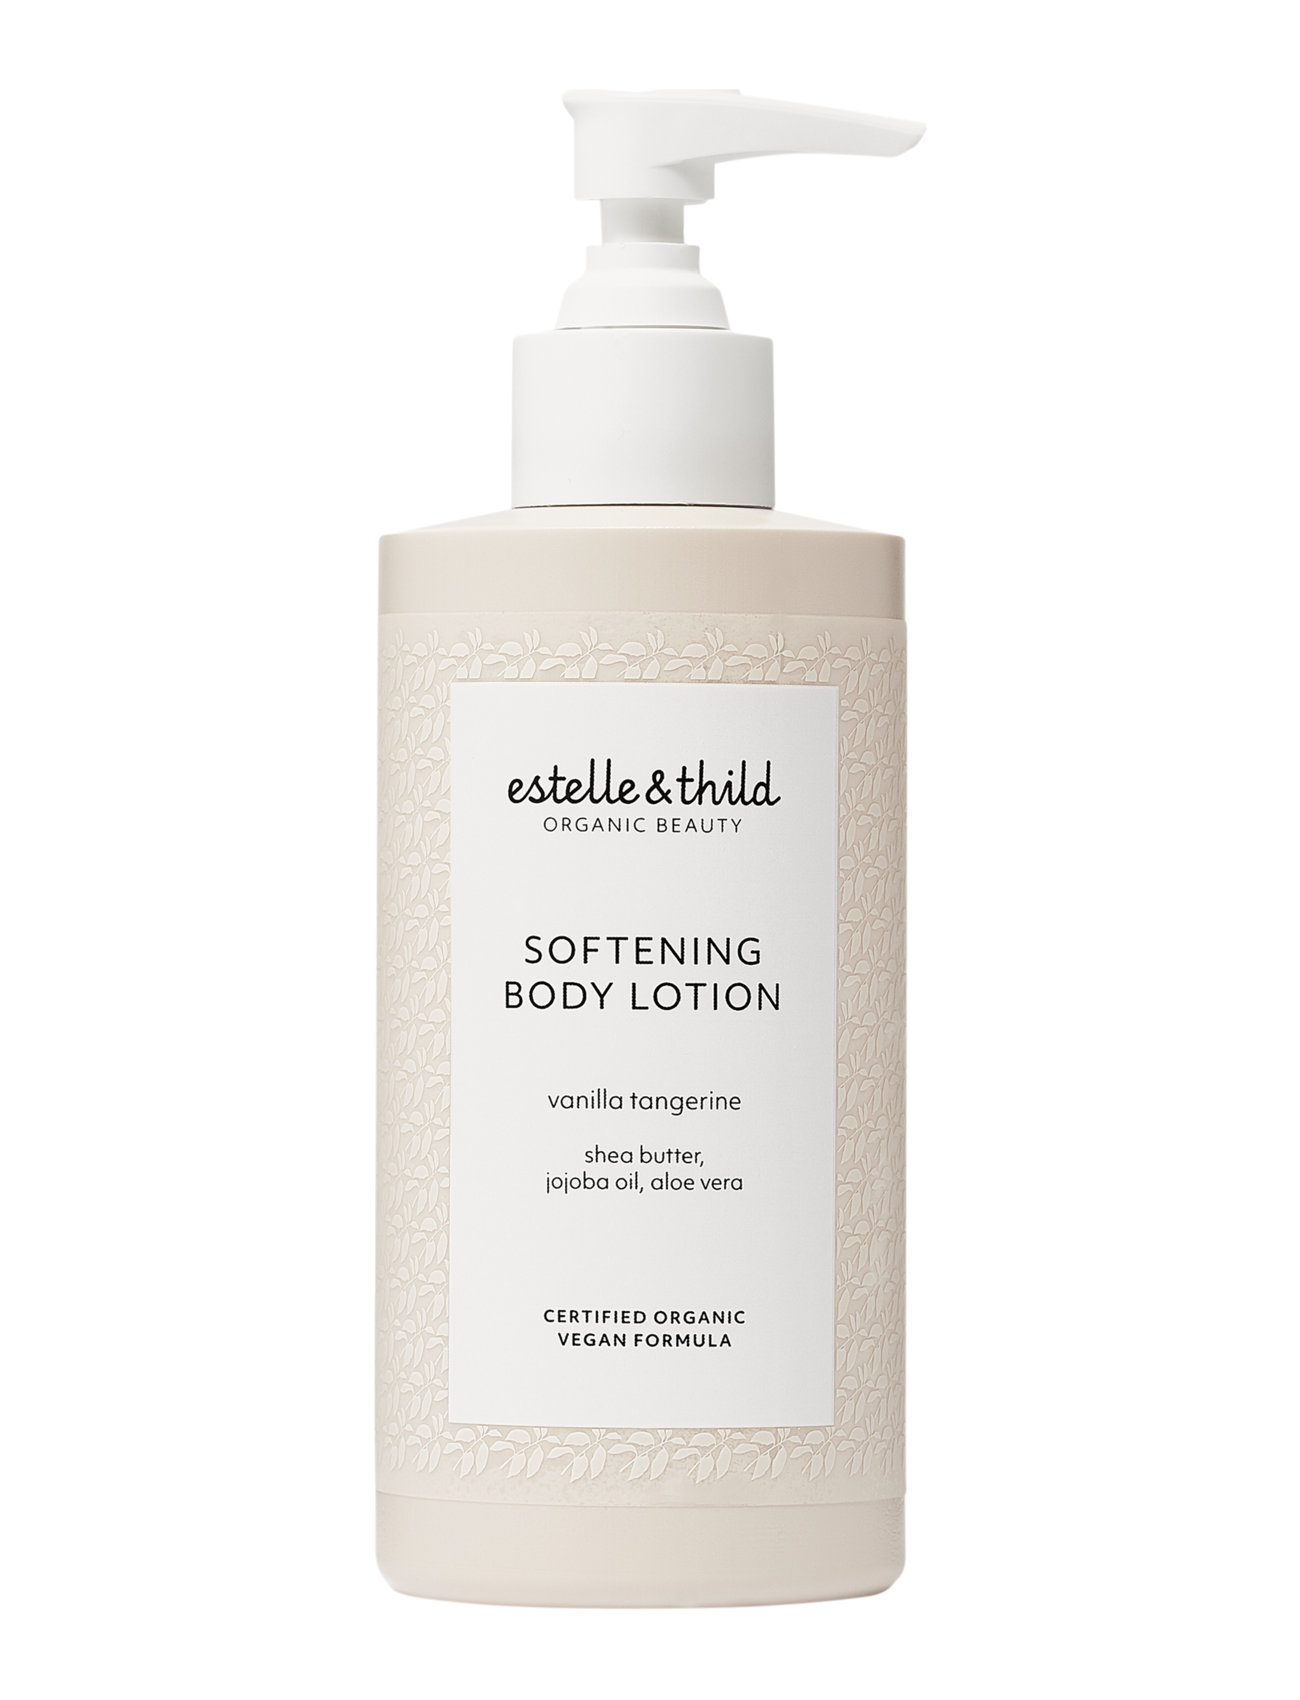 Image of Vanilla Tangerine Softening Body Lotion Beauty WOMEN Skin Care Body Body Lotion Estelle & Thild (3309710411)